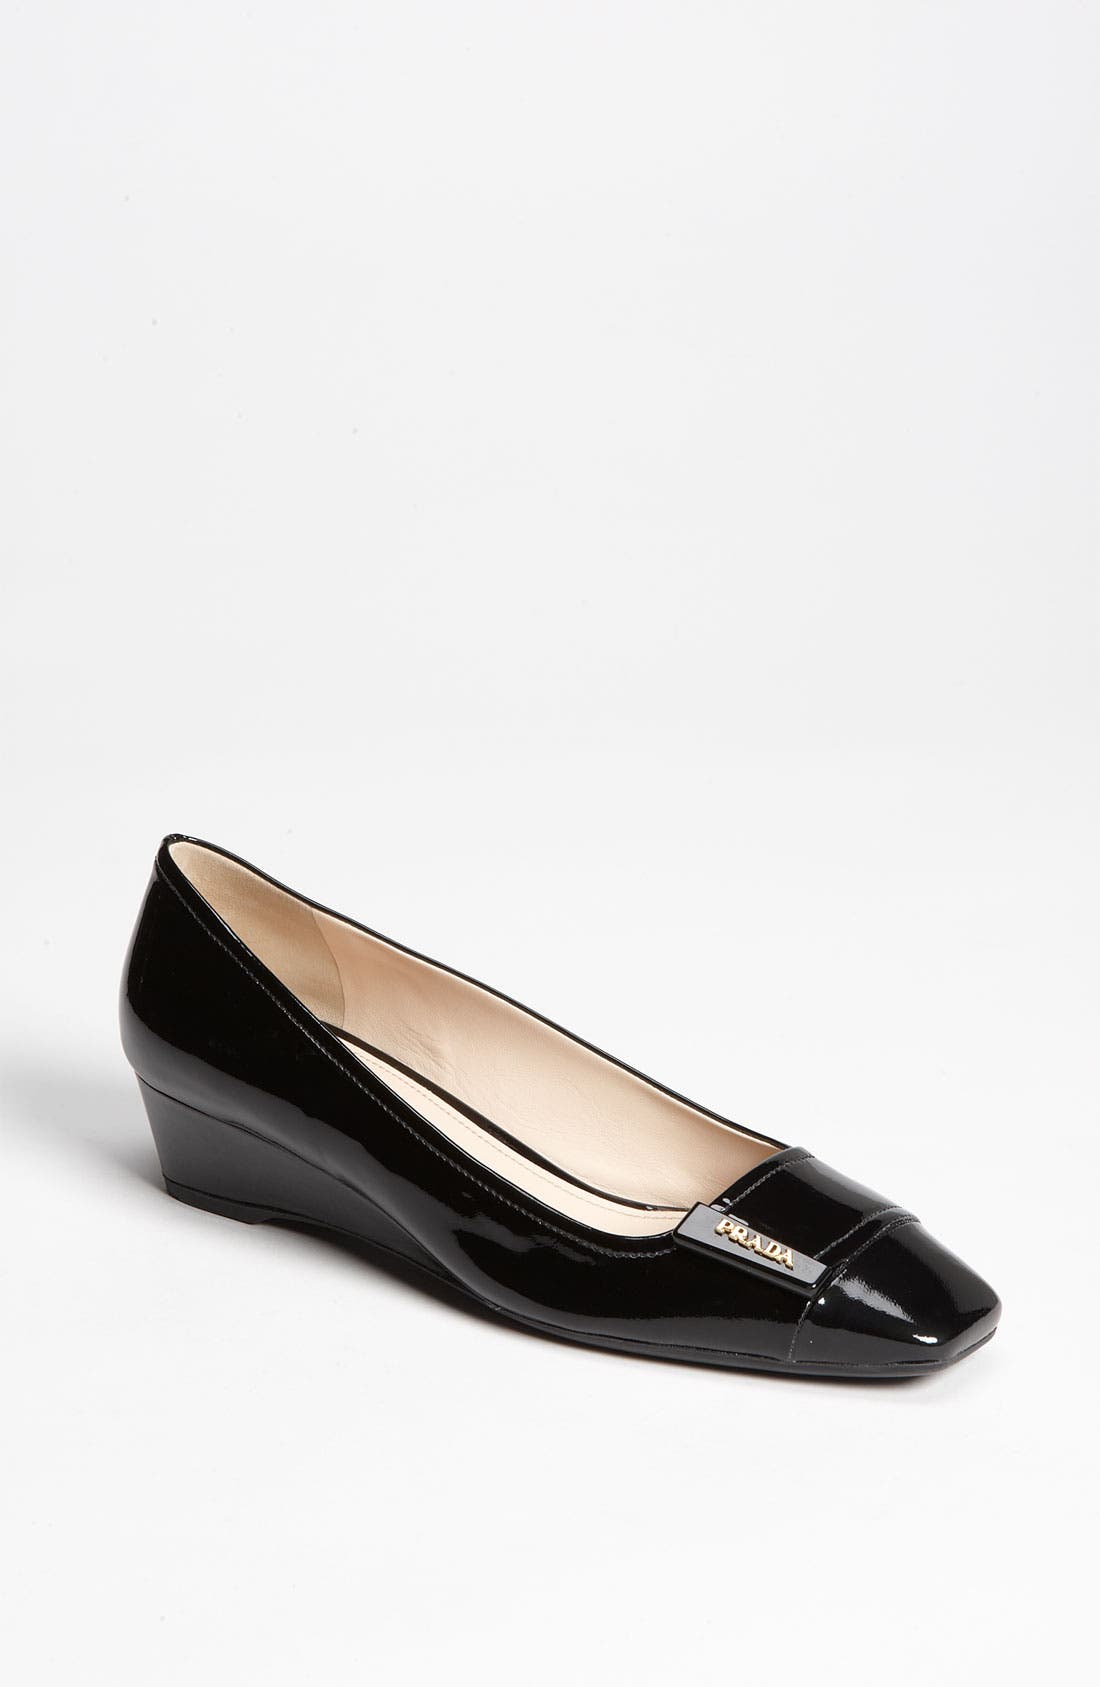 Main Image - Prada Buckle Wedge Pump